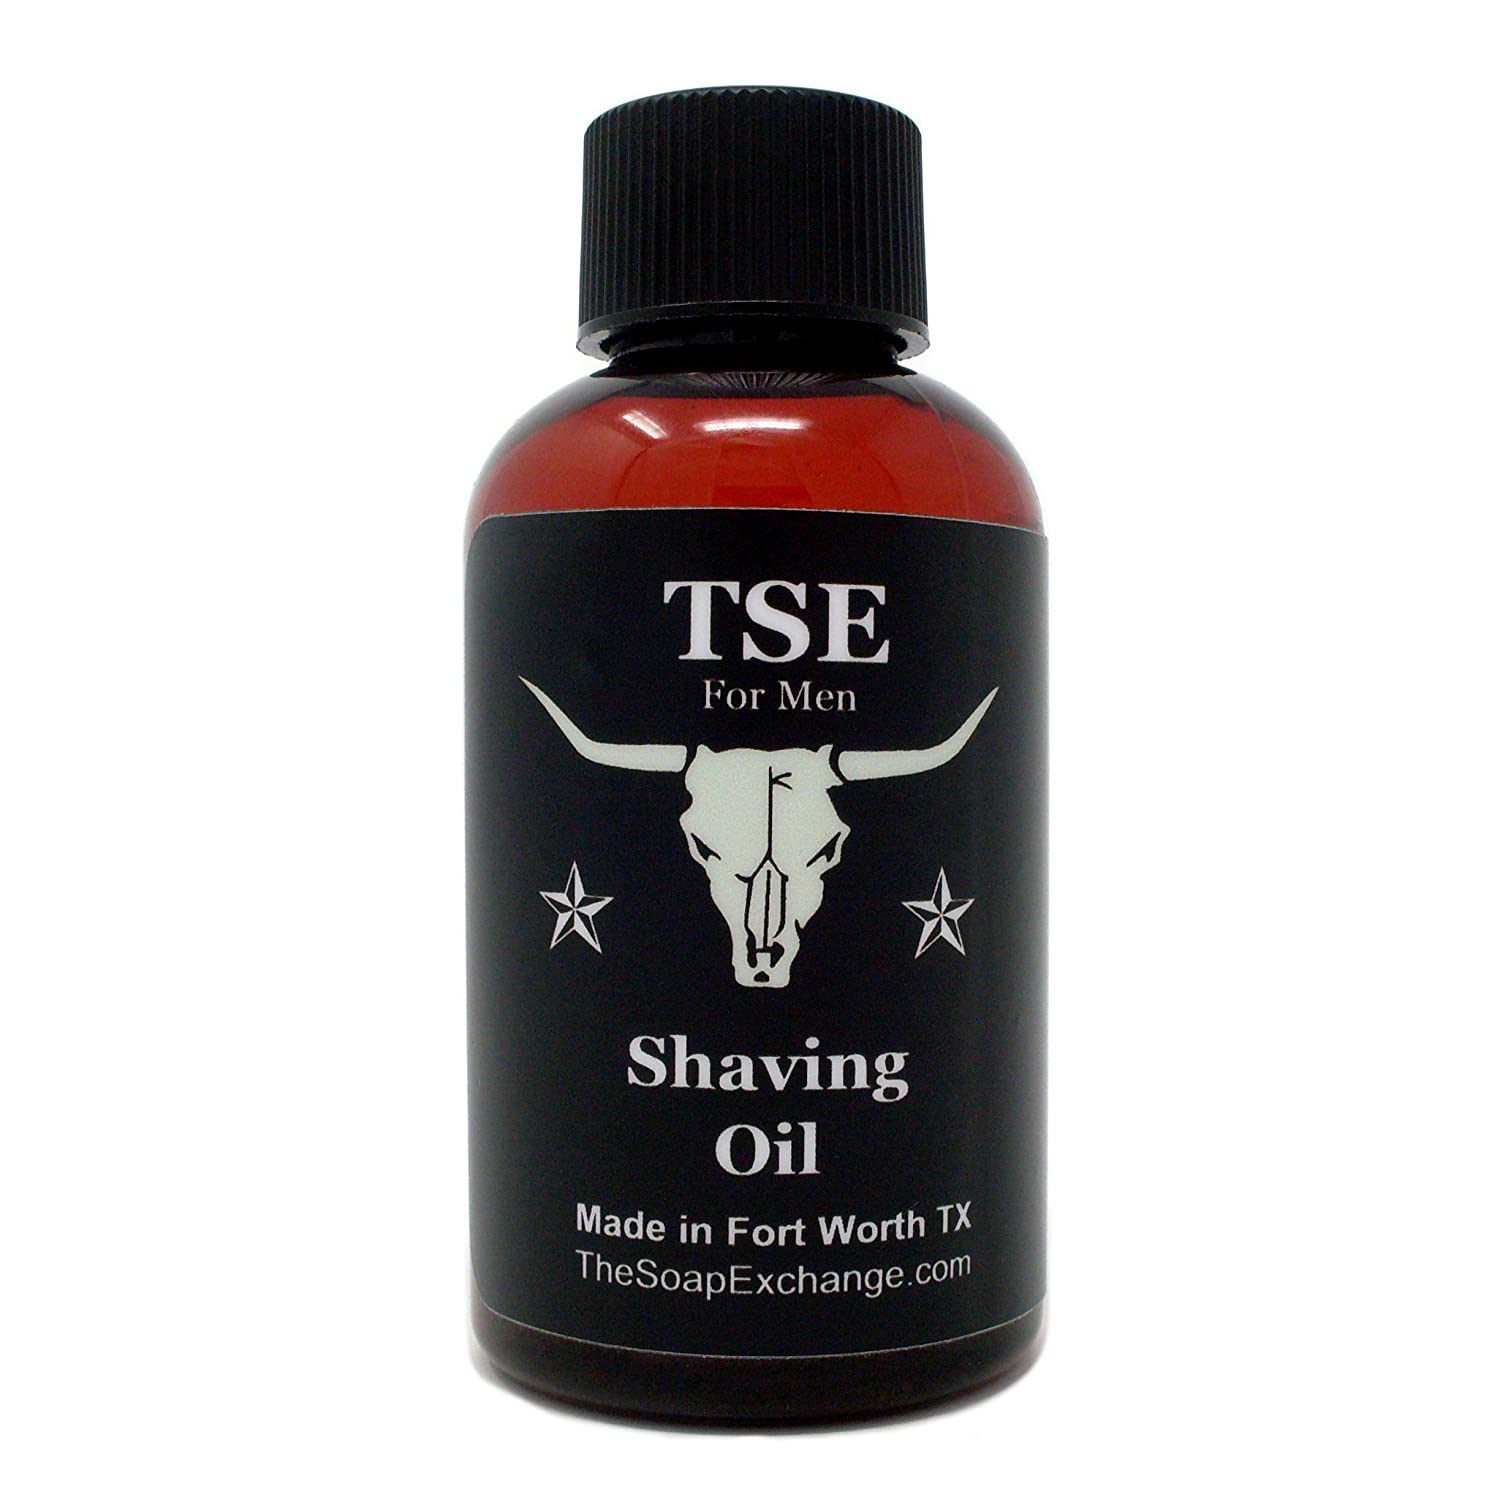 TSE for Men Pre-Shave Oil - Espresso Scent - Hand Crafted 2 fl oz/60 ml Ultra Glide, Premium Lubricating, Natural Ingredients, For Face or Head, Made in the USA. The Soap Exchange